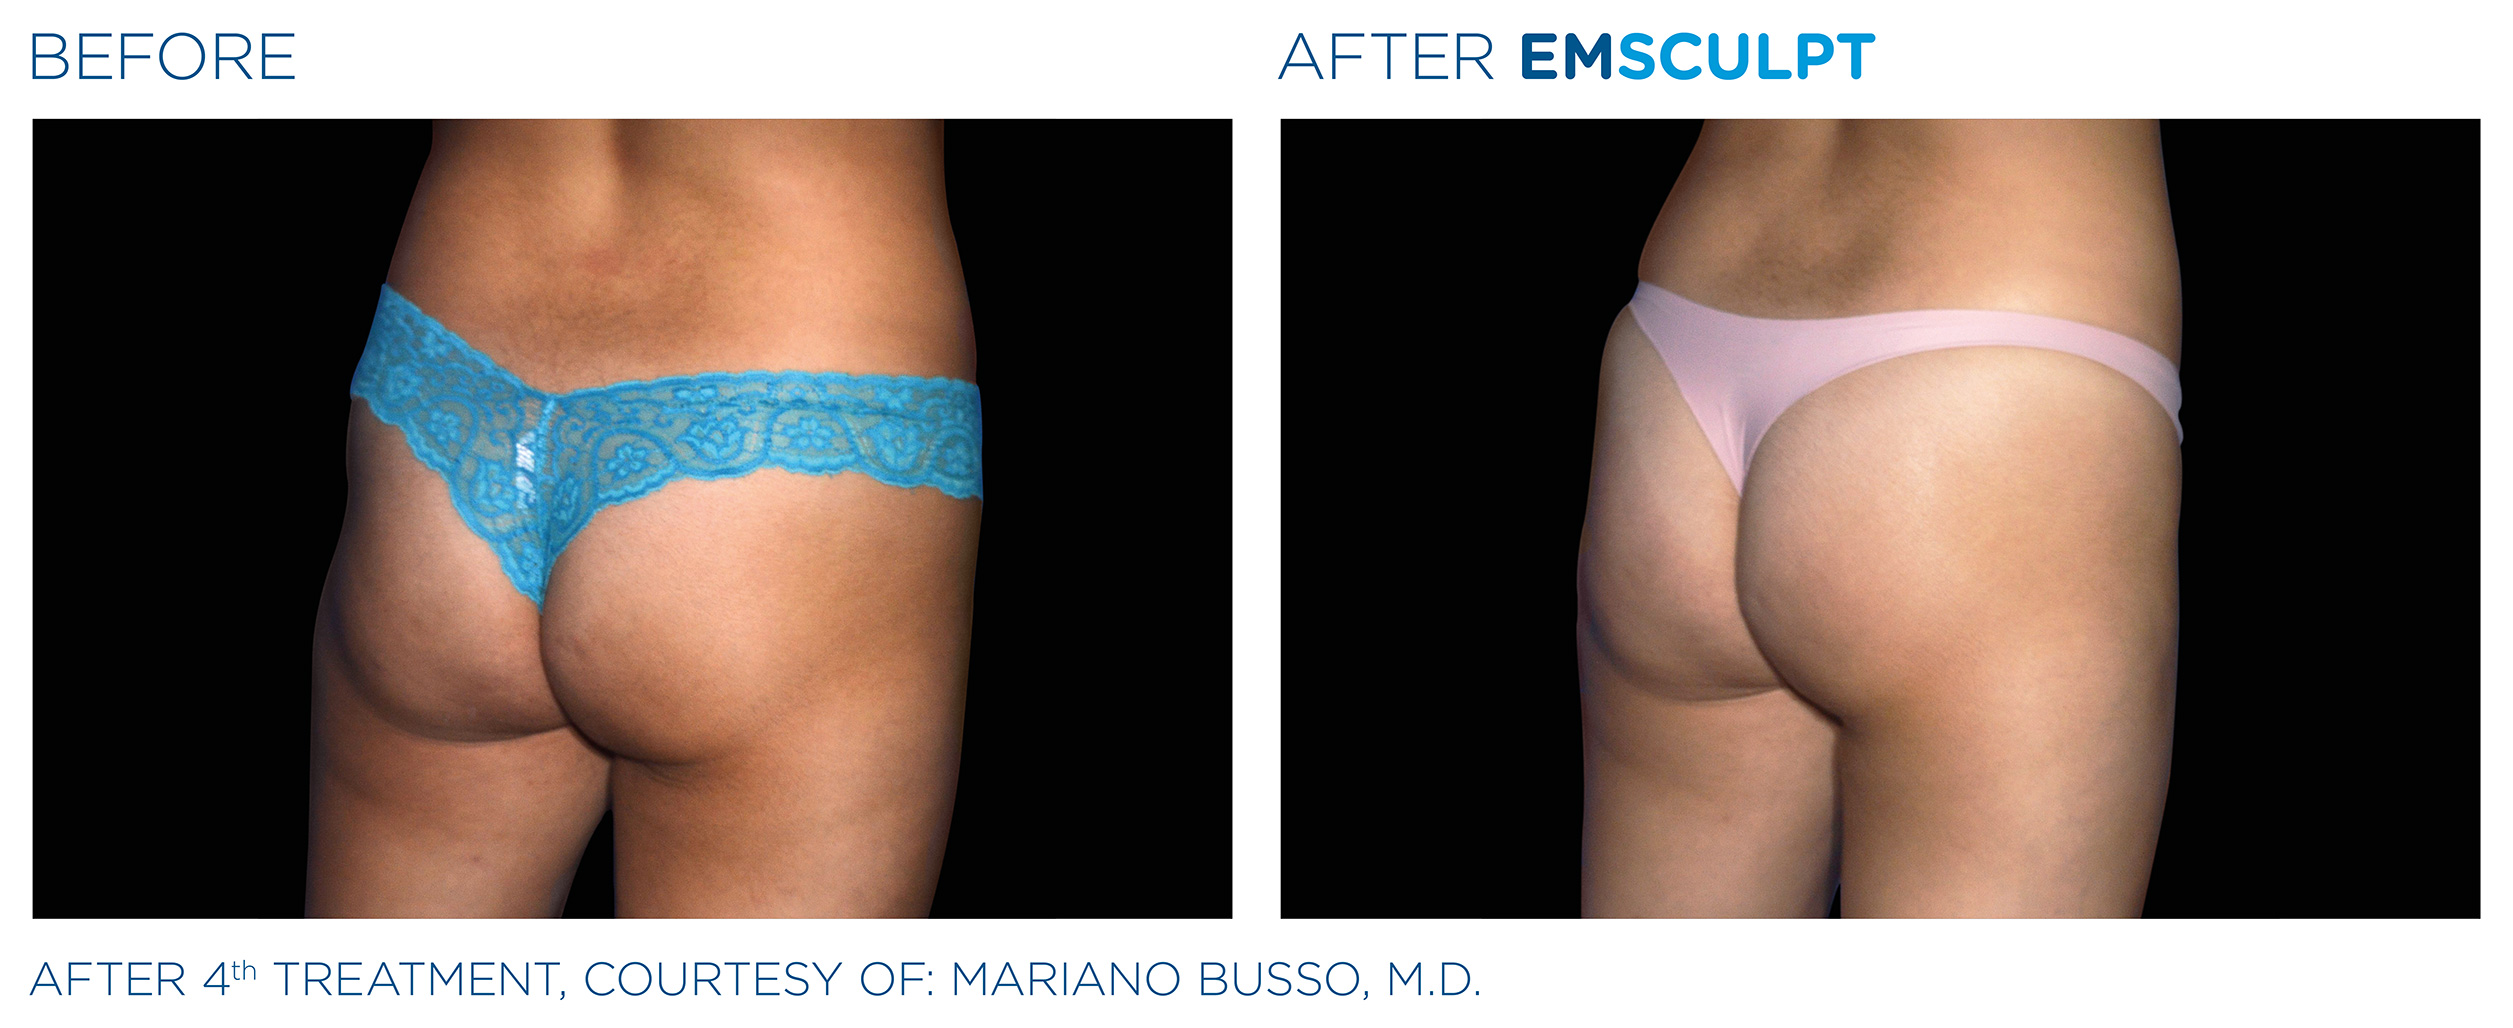 EMSCULPT Before & After Photos | Female Buttocks 3